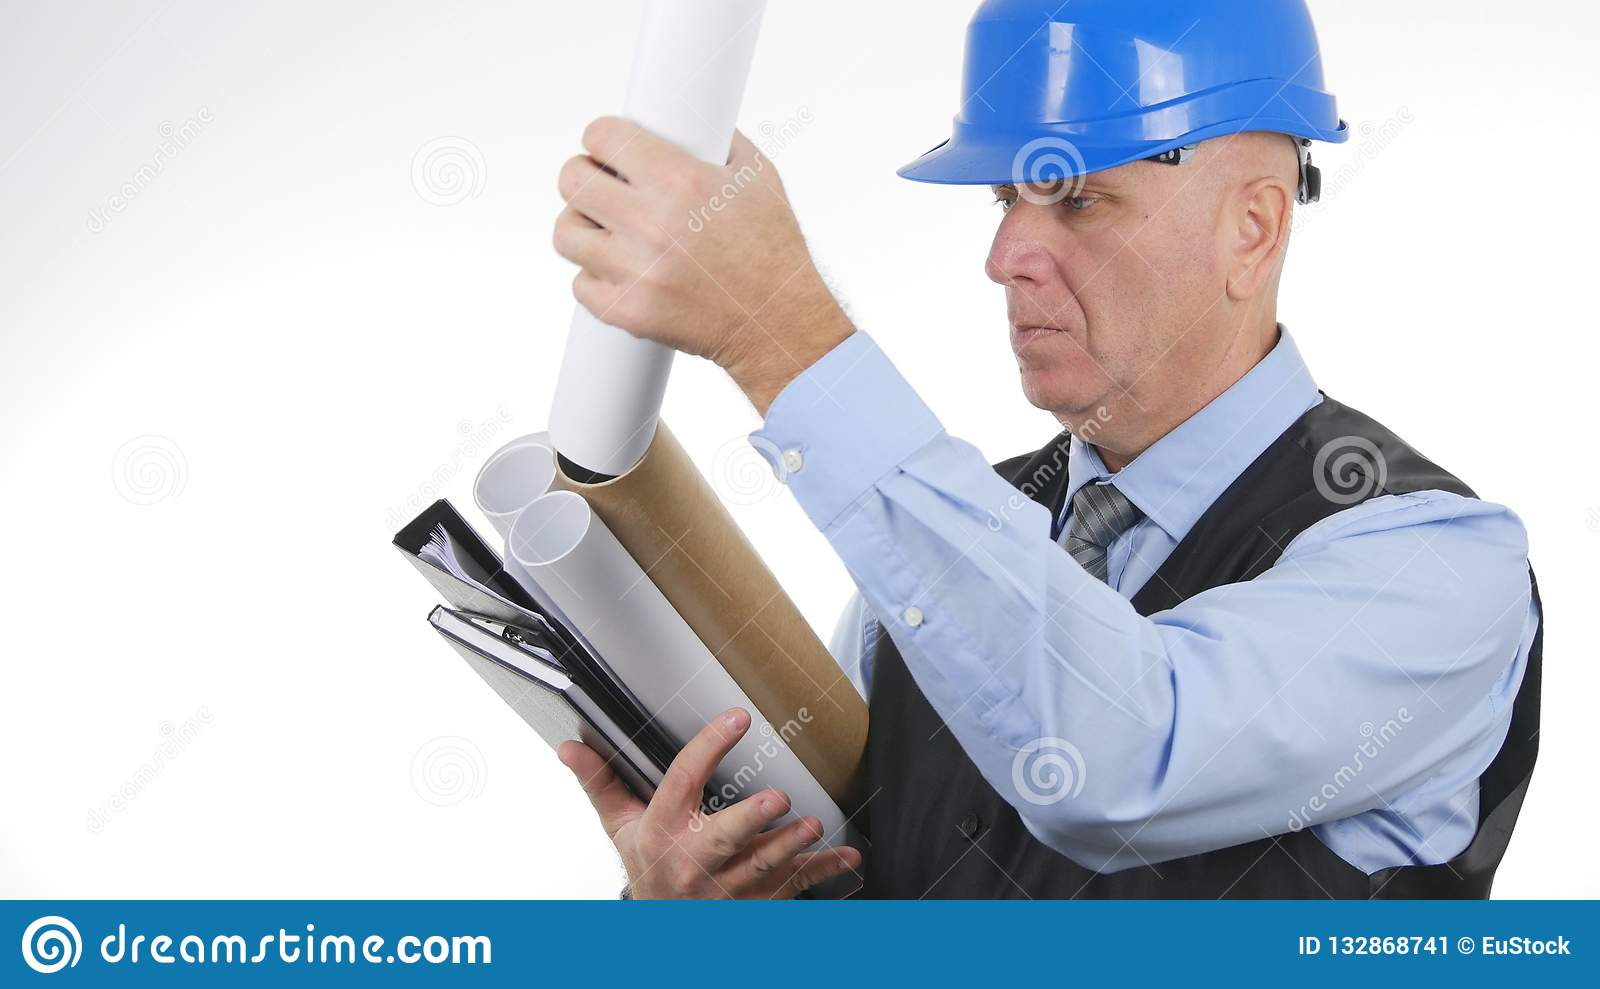 Serious Engineer Working with Plans on White Background